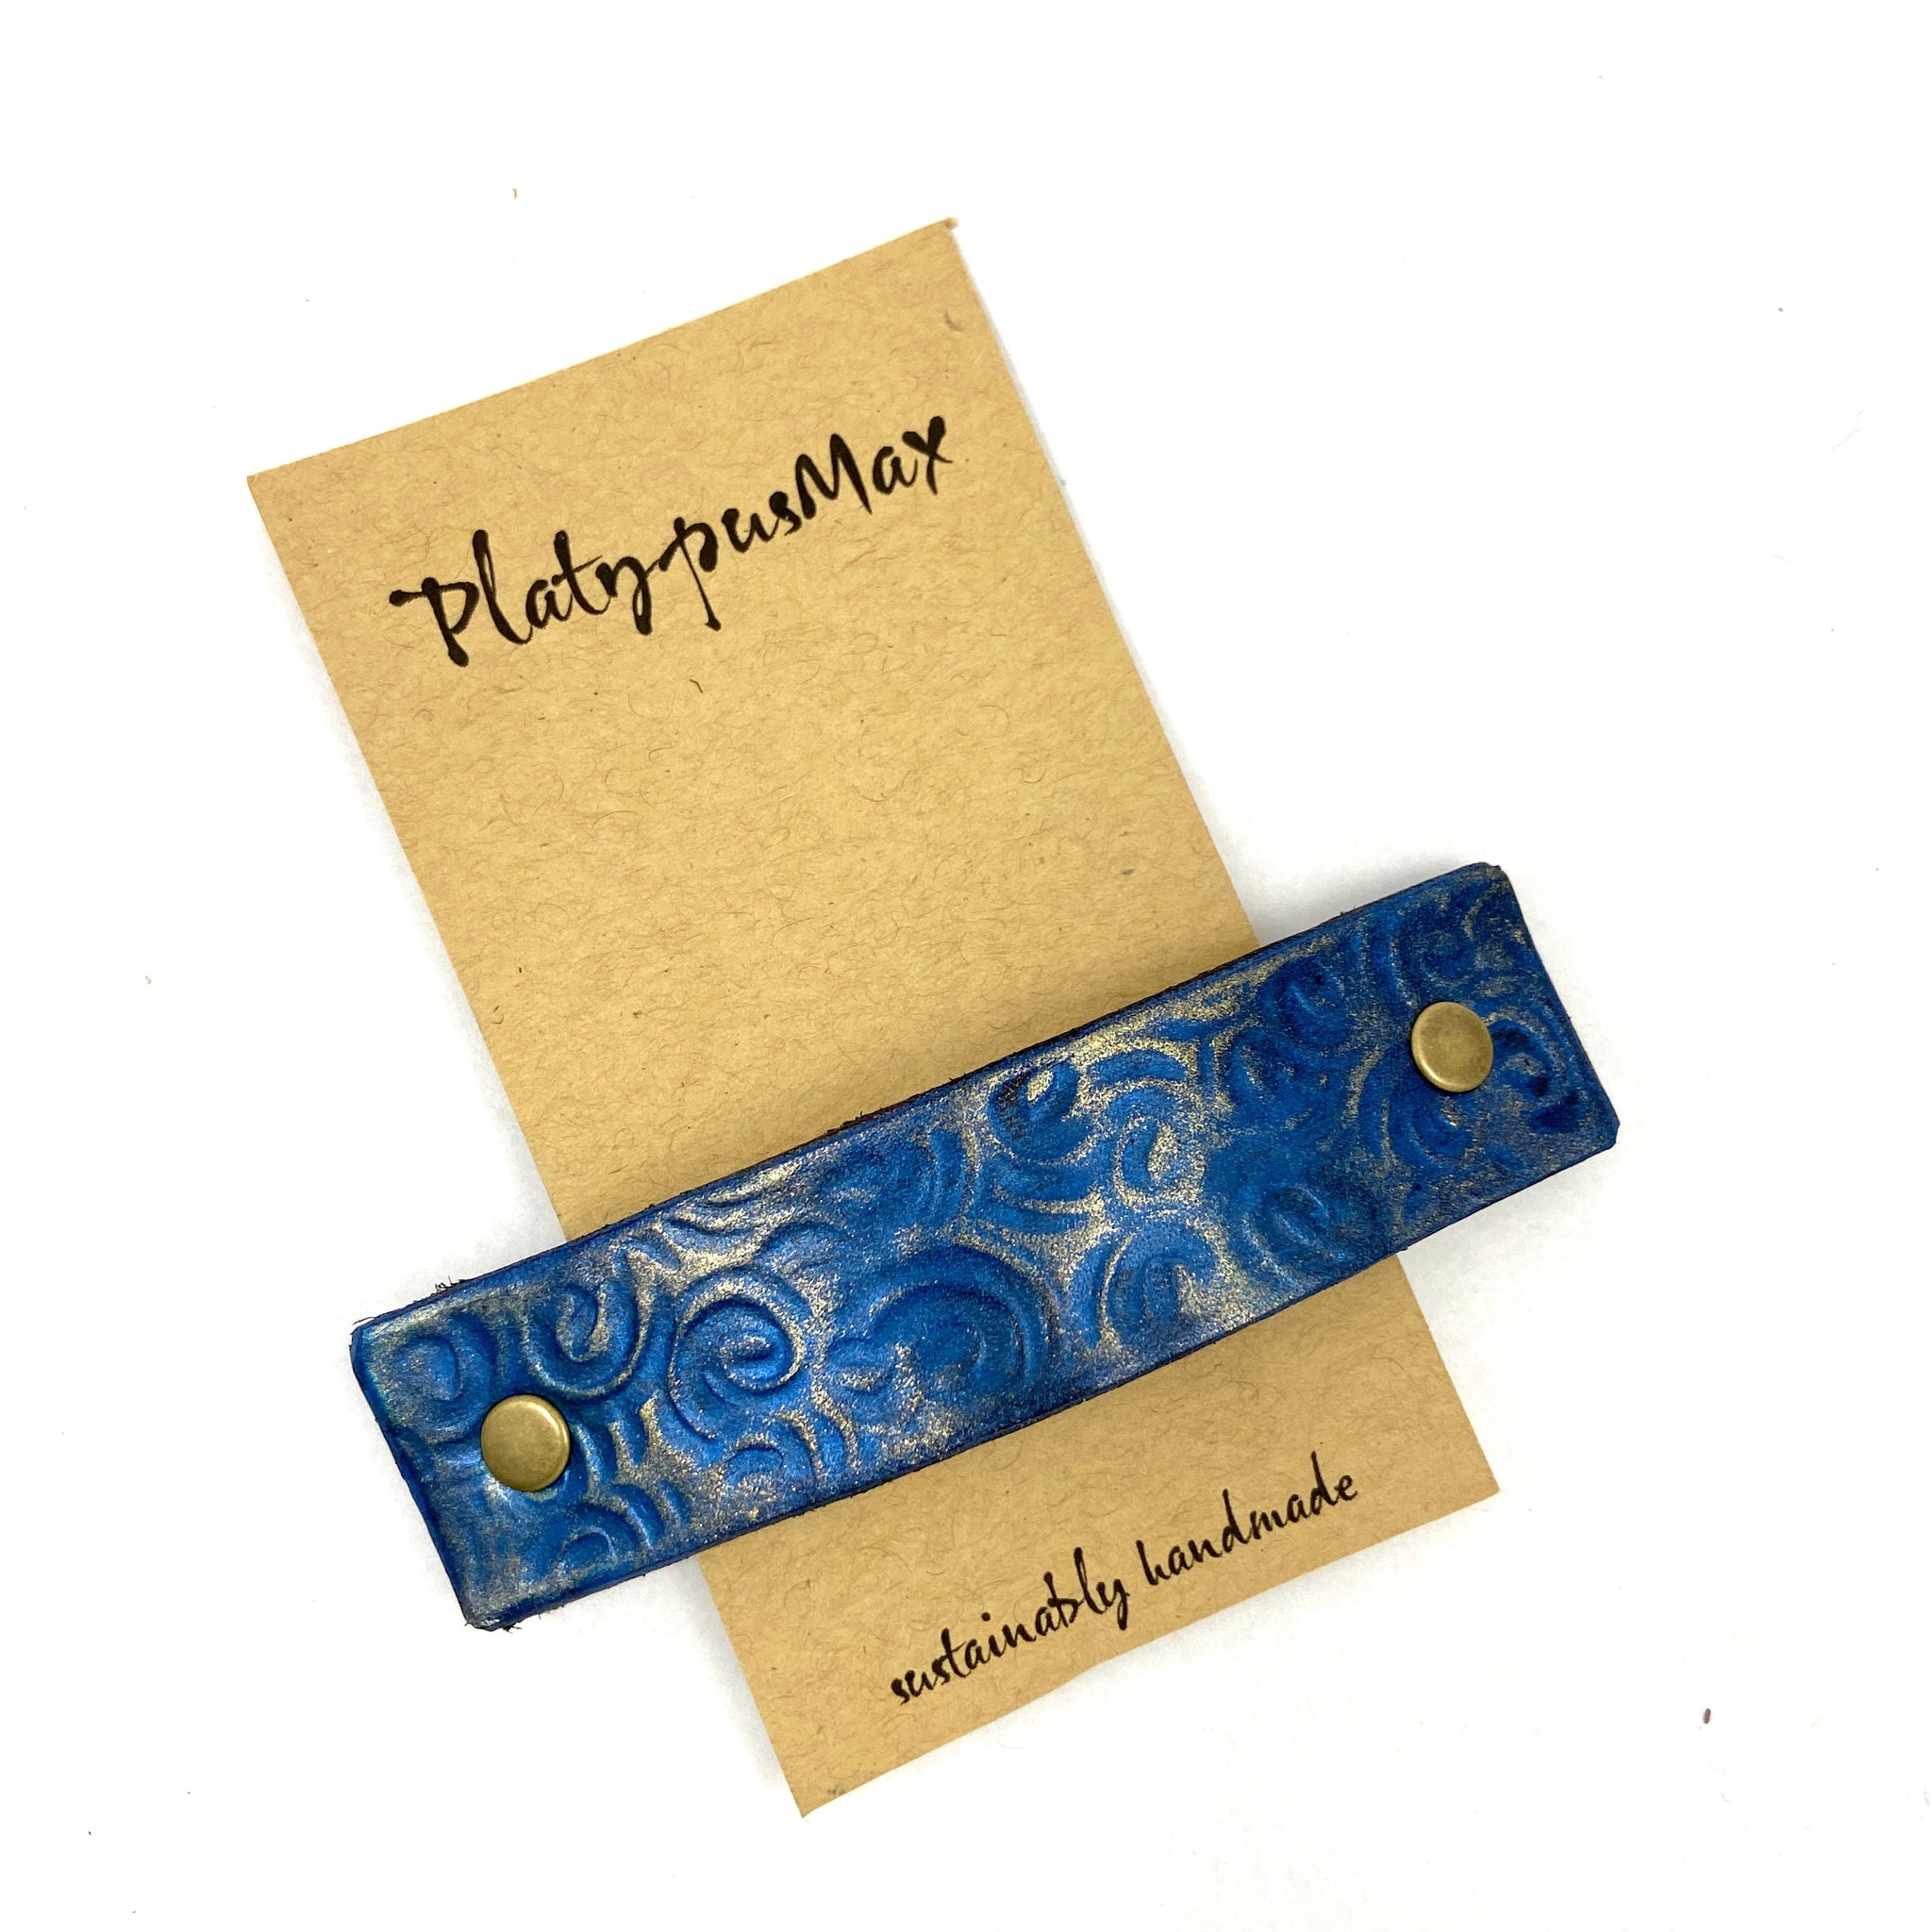 Lapis Blue & Gold Leather Barrette with Rustic Spirals Texture - Platypus Max